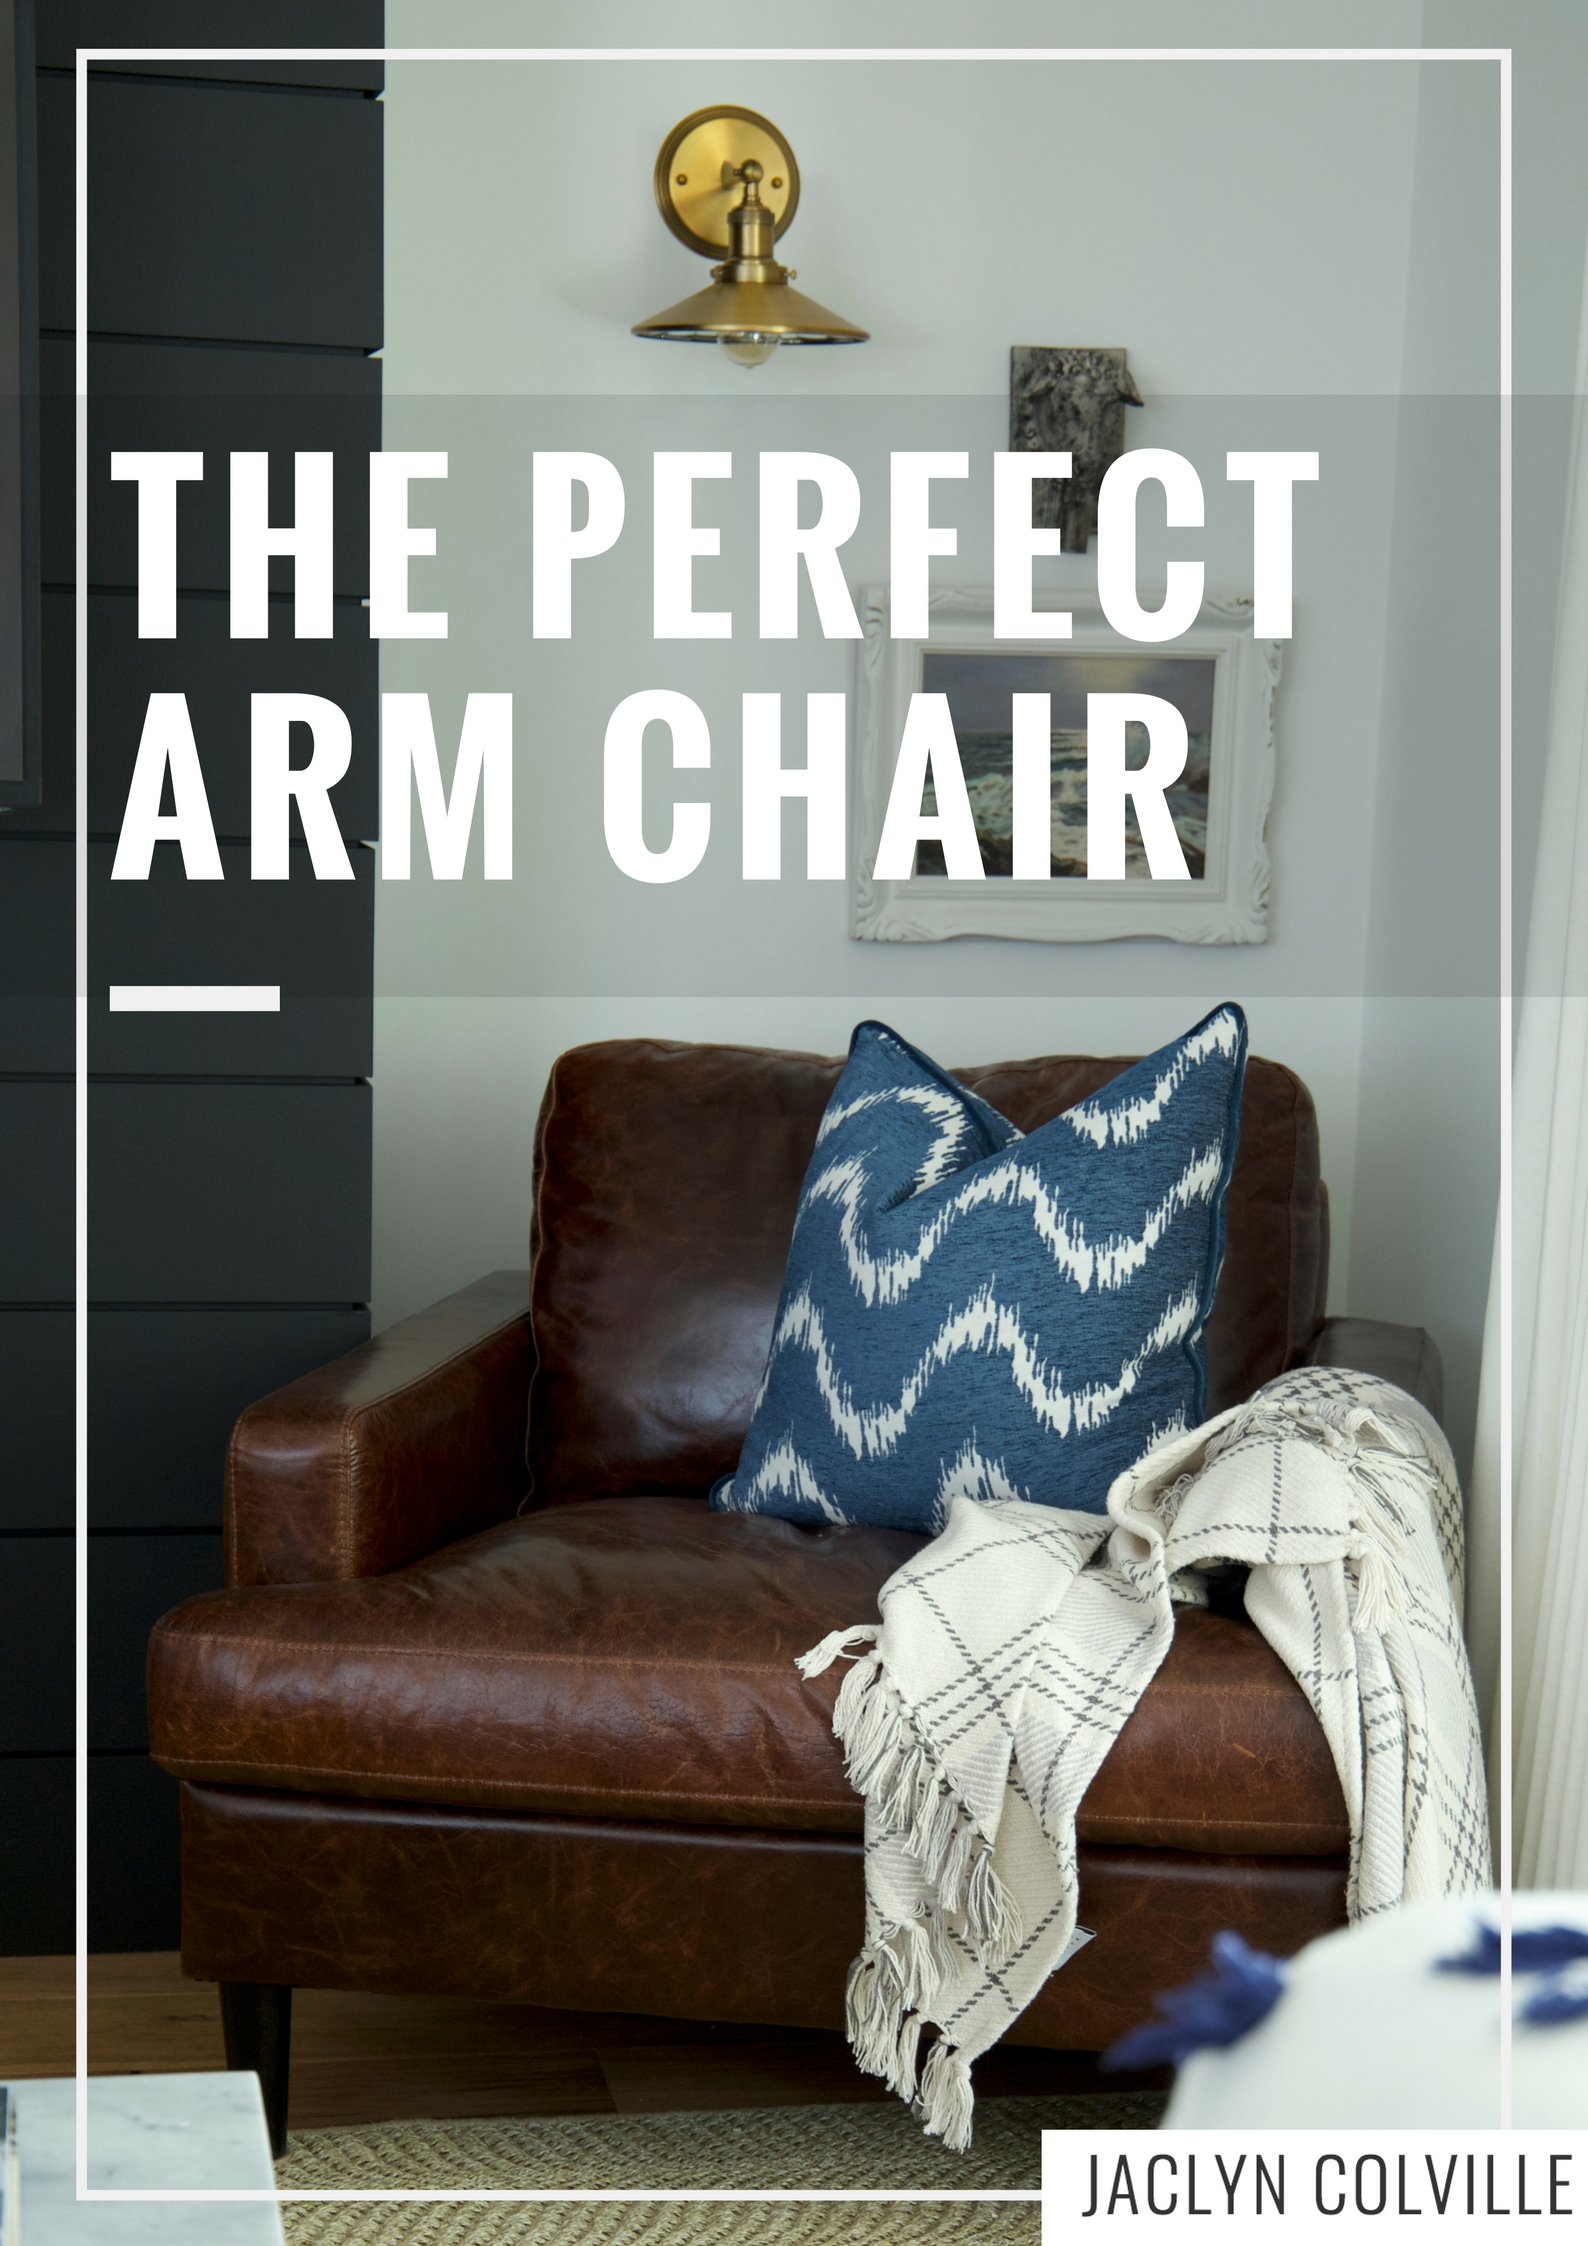 The Perfect Arm Chair.jpg